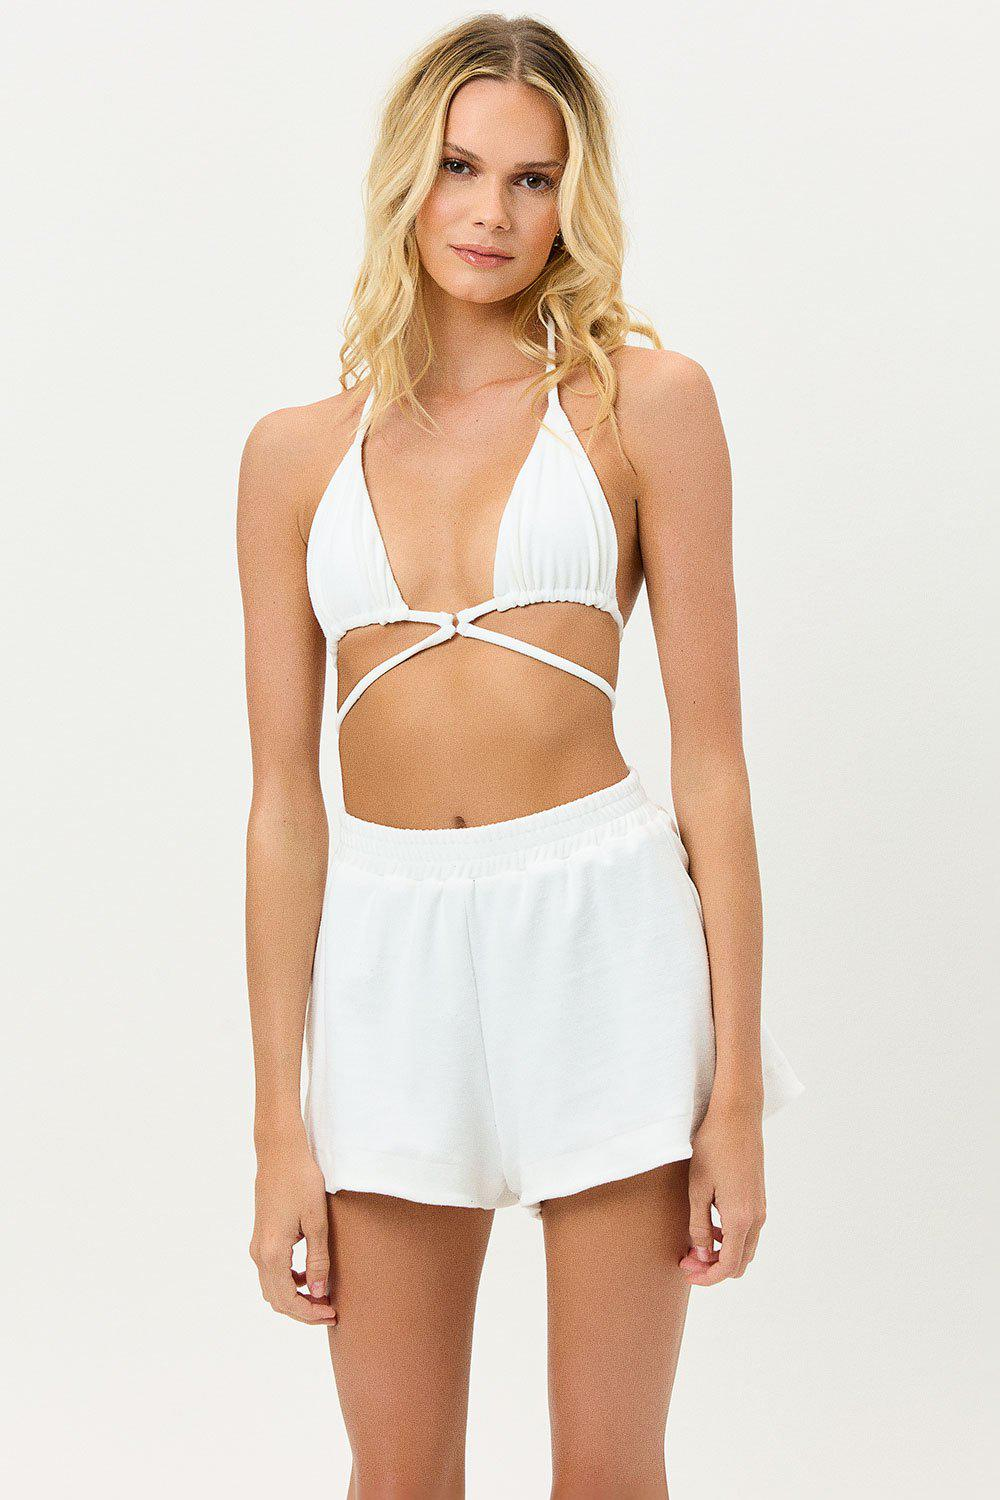 Coco Terry Shorts - White 1